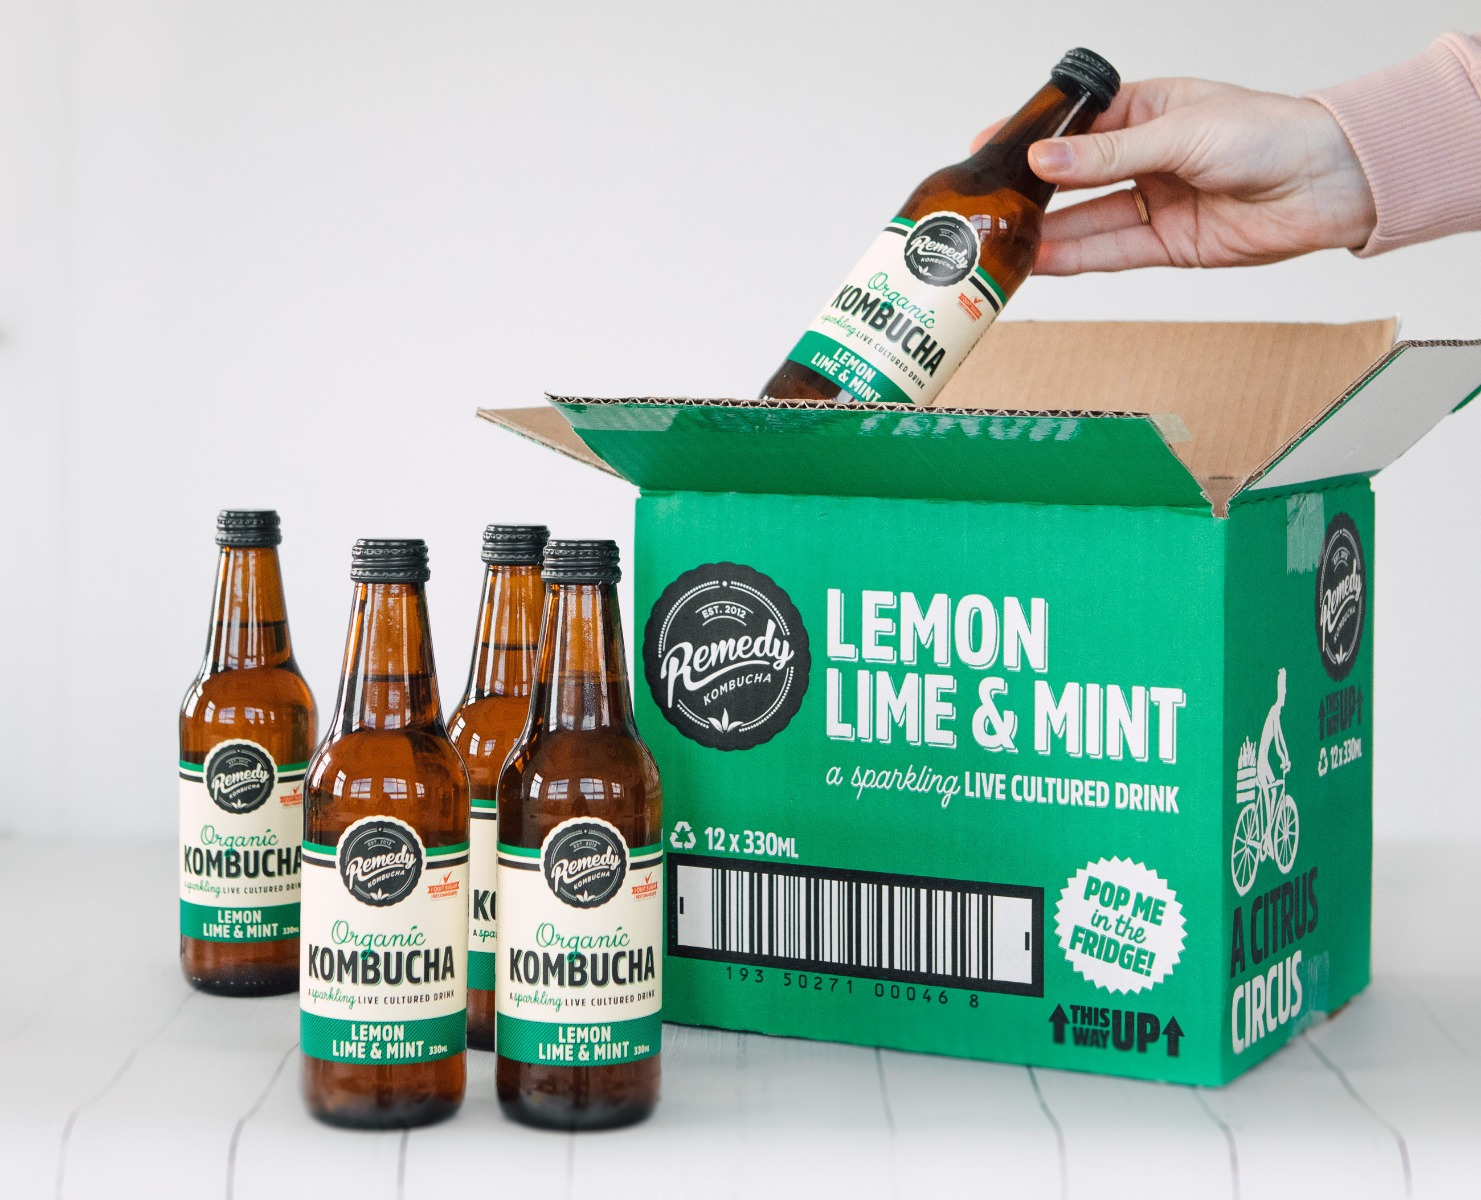 Green box of Remedy Kombucha Lemon Lime and Mint